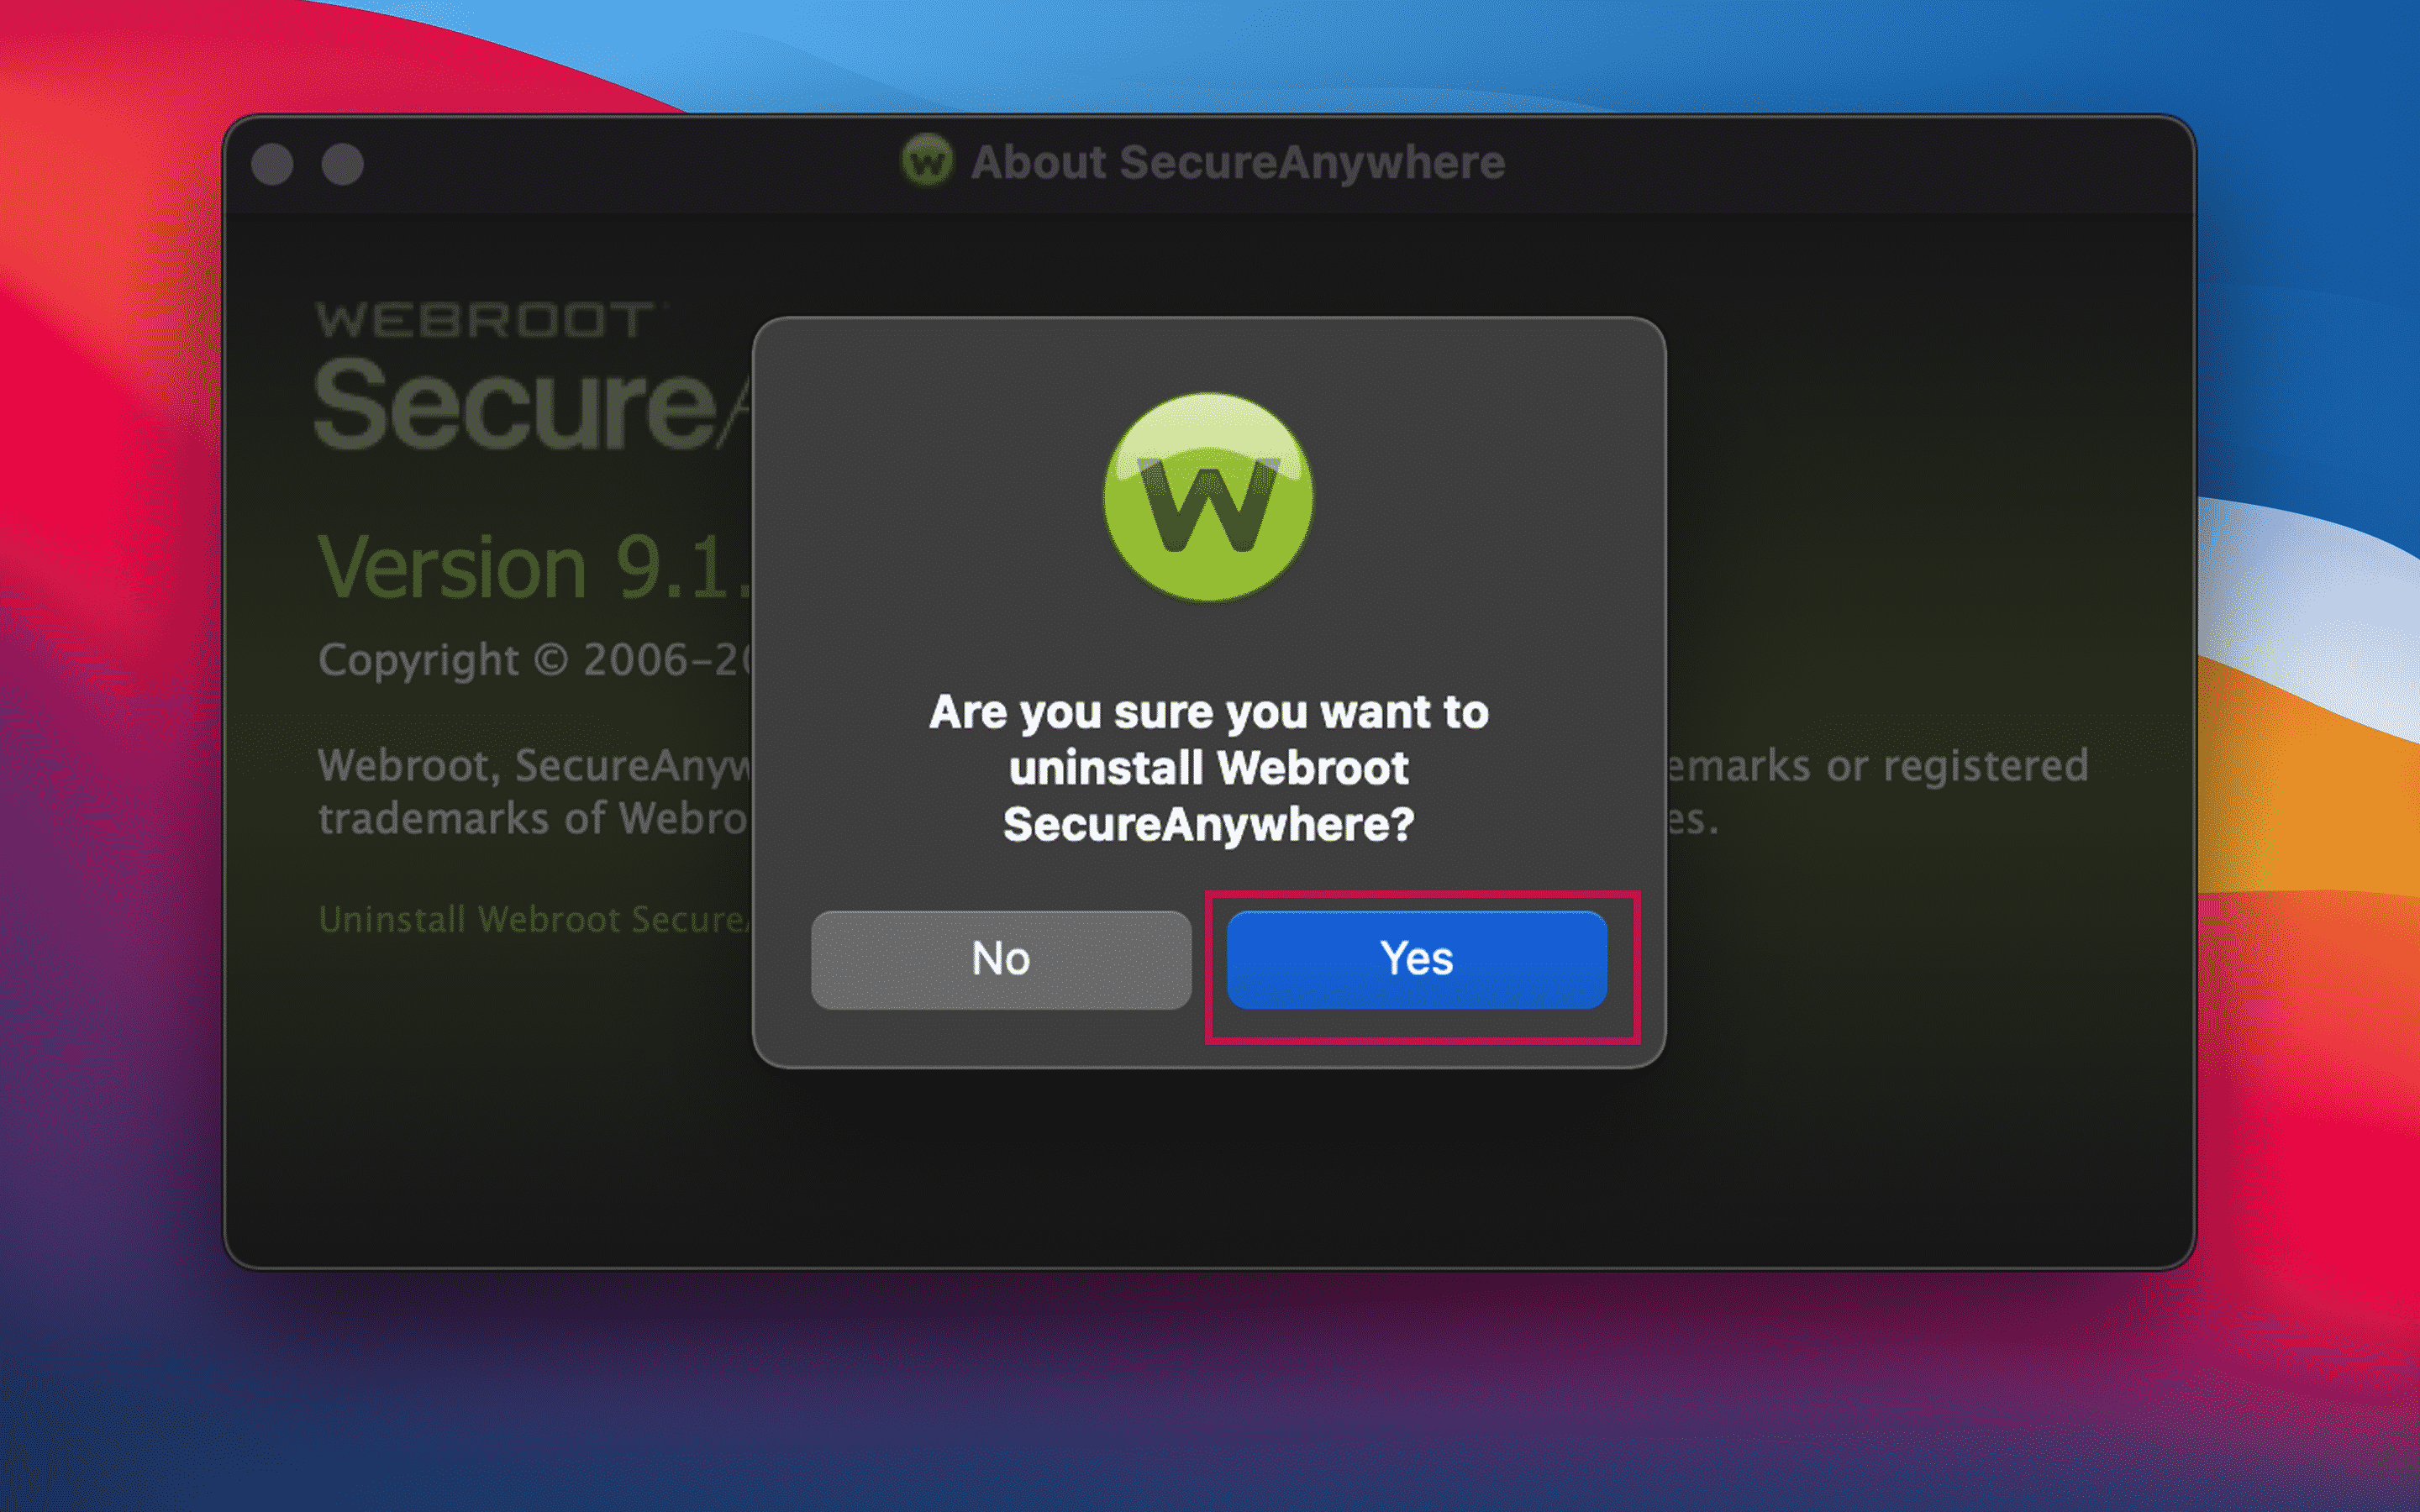 Confirmation window to uninstall WebRoot from Mac